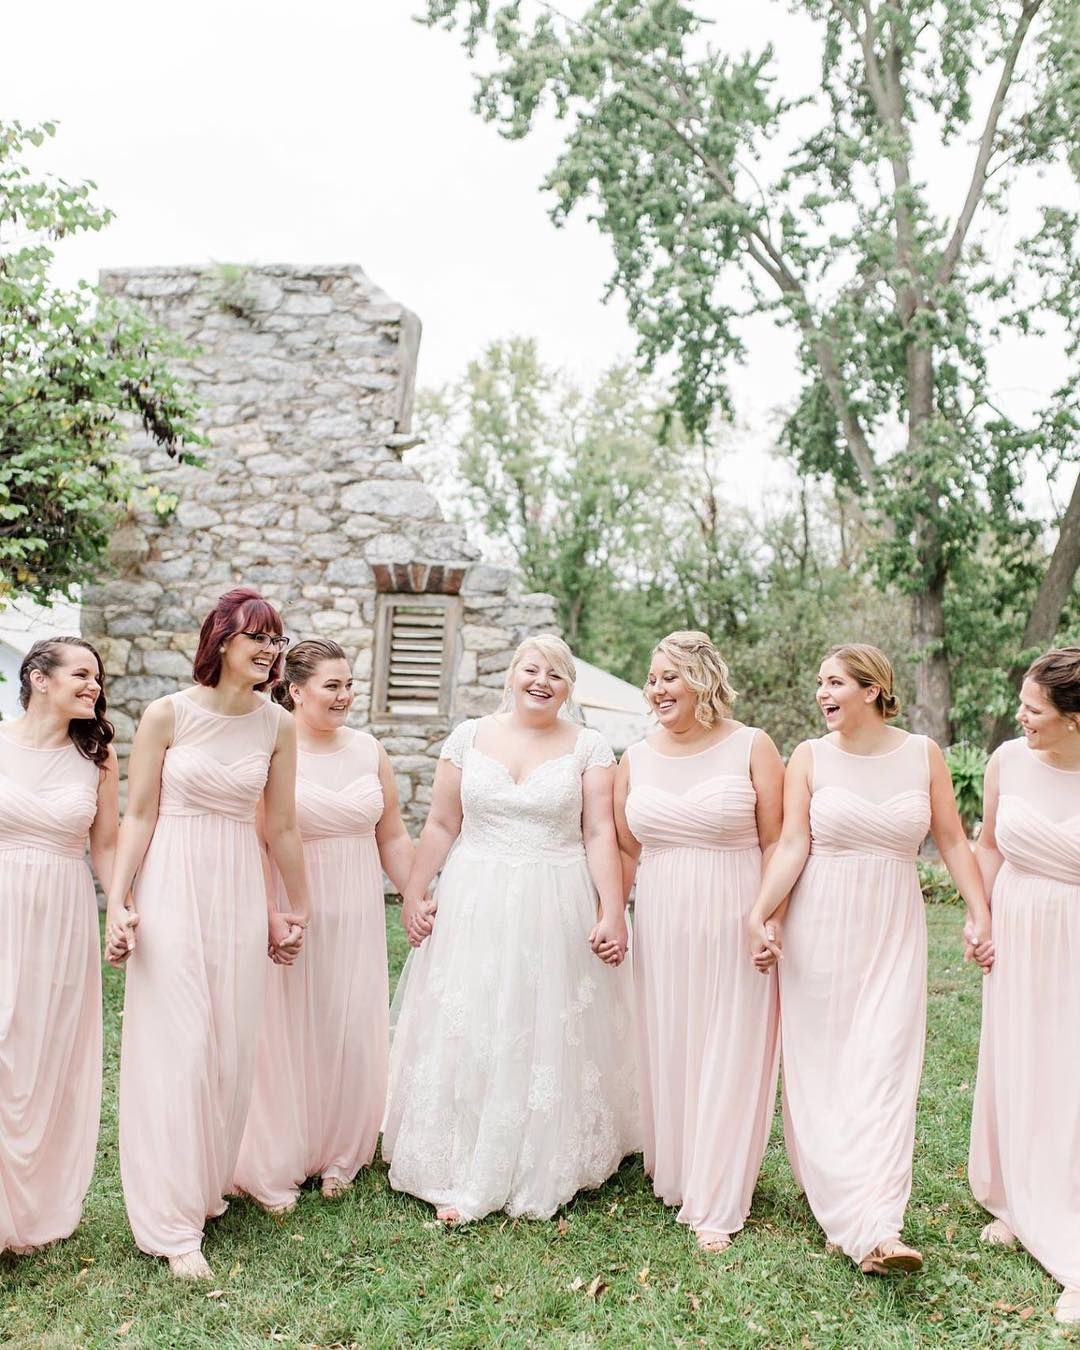 Davids bridal bridesmaids in illusion neck long bridesmaid davids bridal bridesmaids in illusion neck long bridesmaid dresses in pastel pink see style f15927 ombrellifo Images